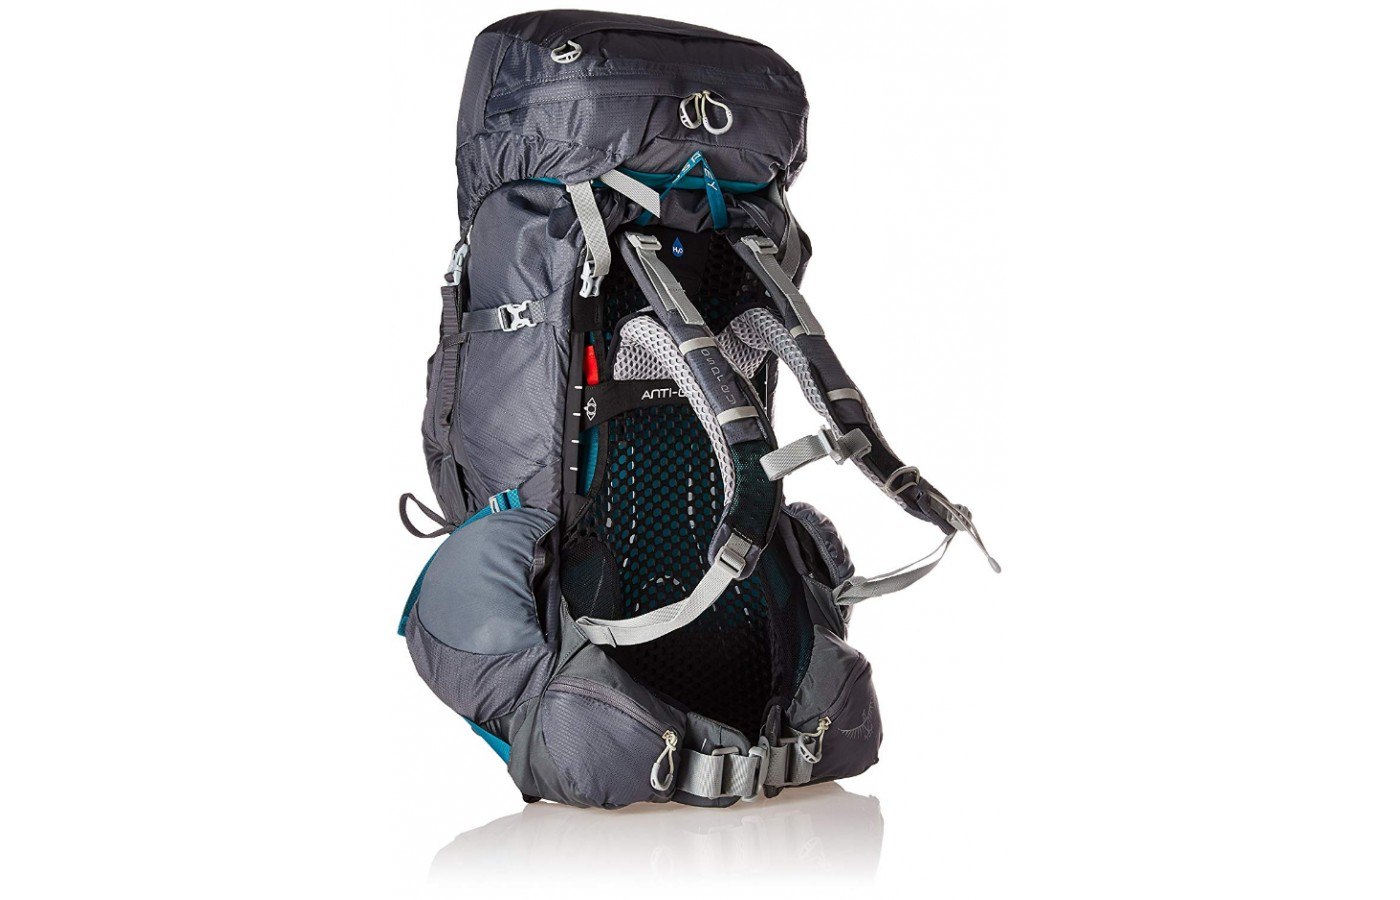 The mesh on the back offers both the anti-gravity suspension and ventilation to prevent overheating.